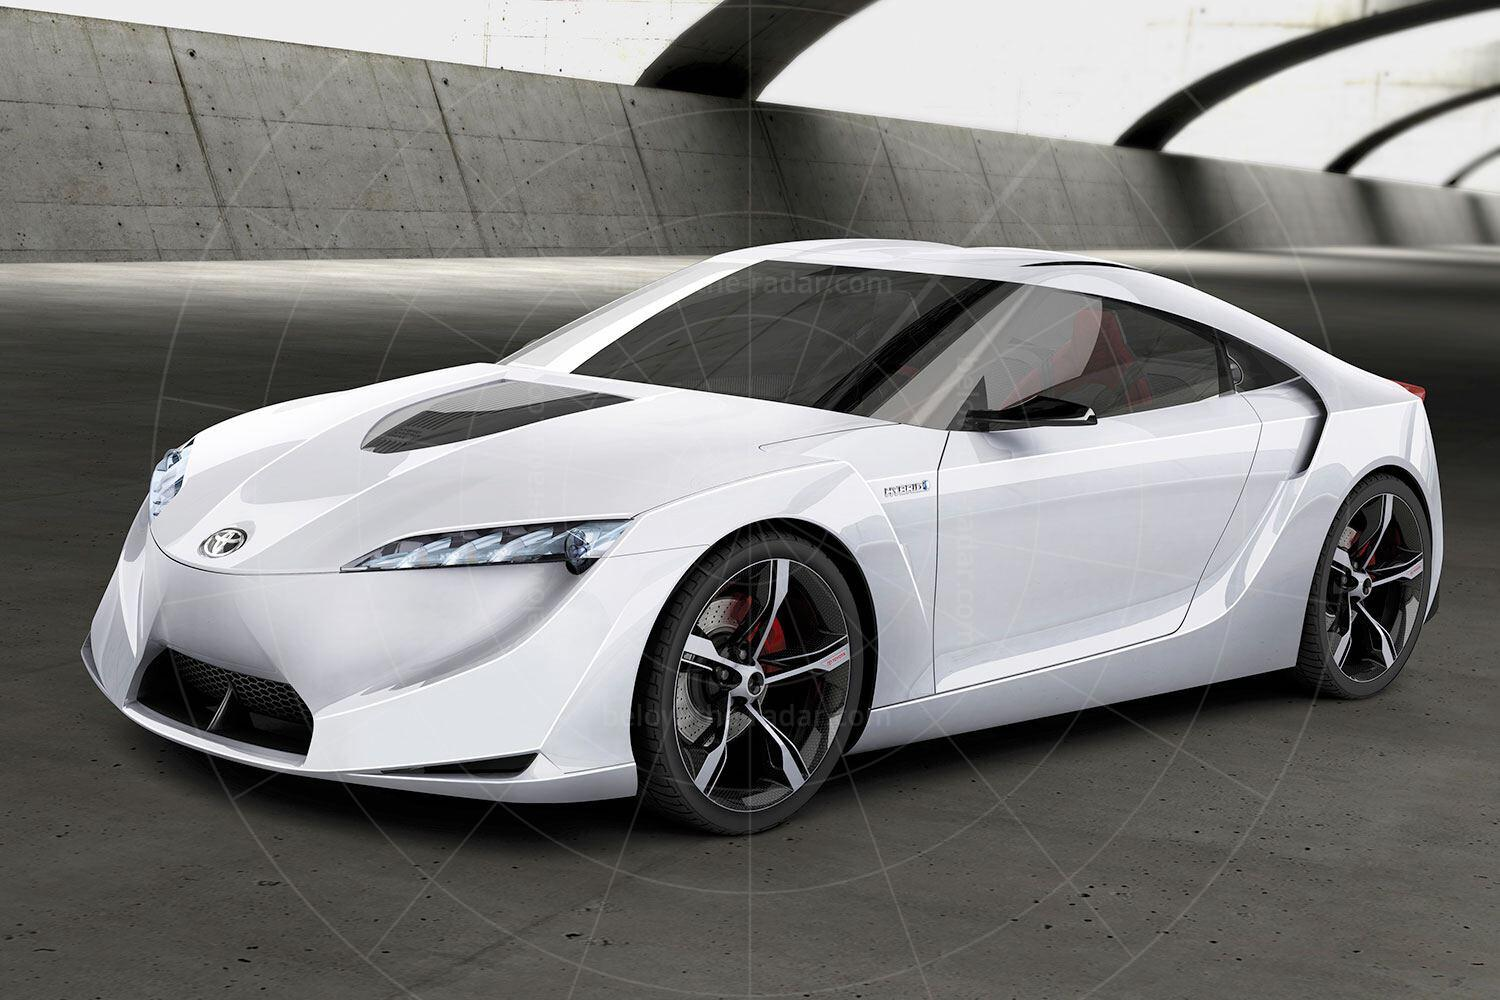 Toyota FT-HS concept Pic: Toyota   Toyota FT-HS concept